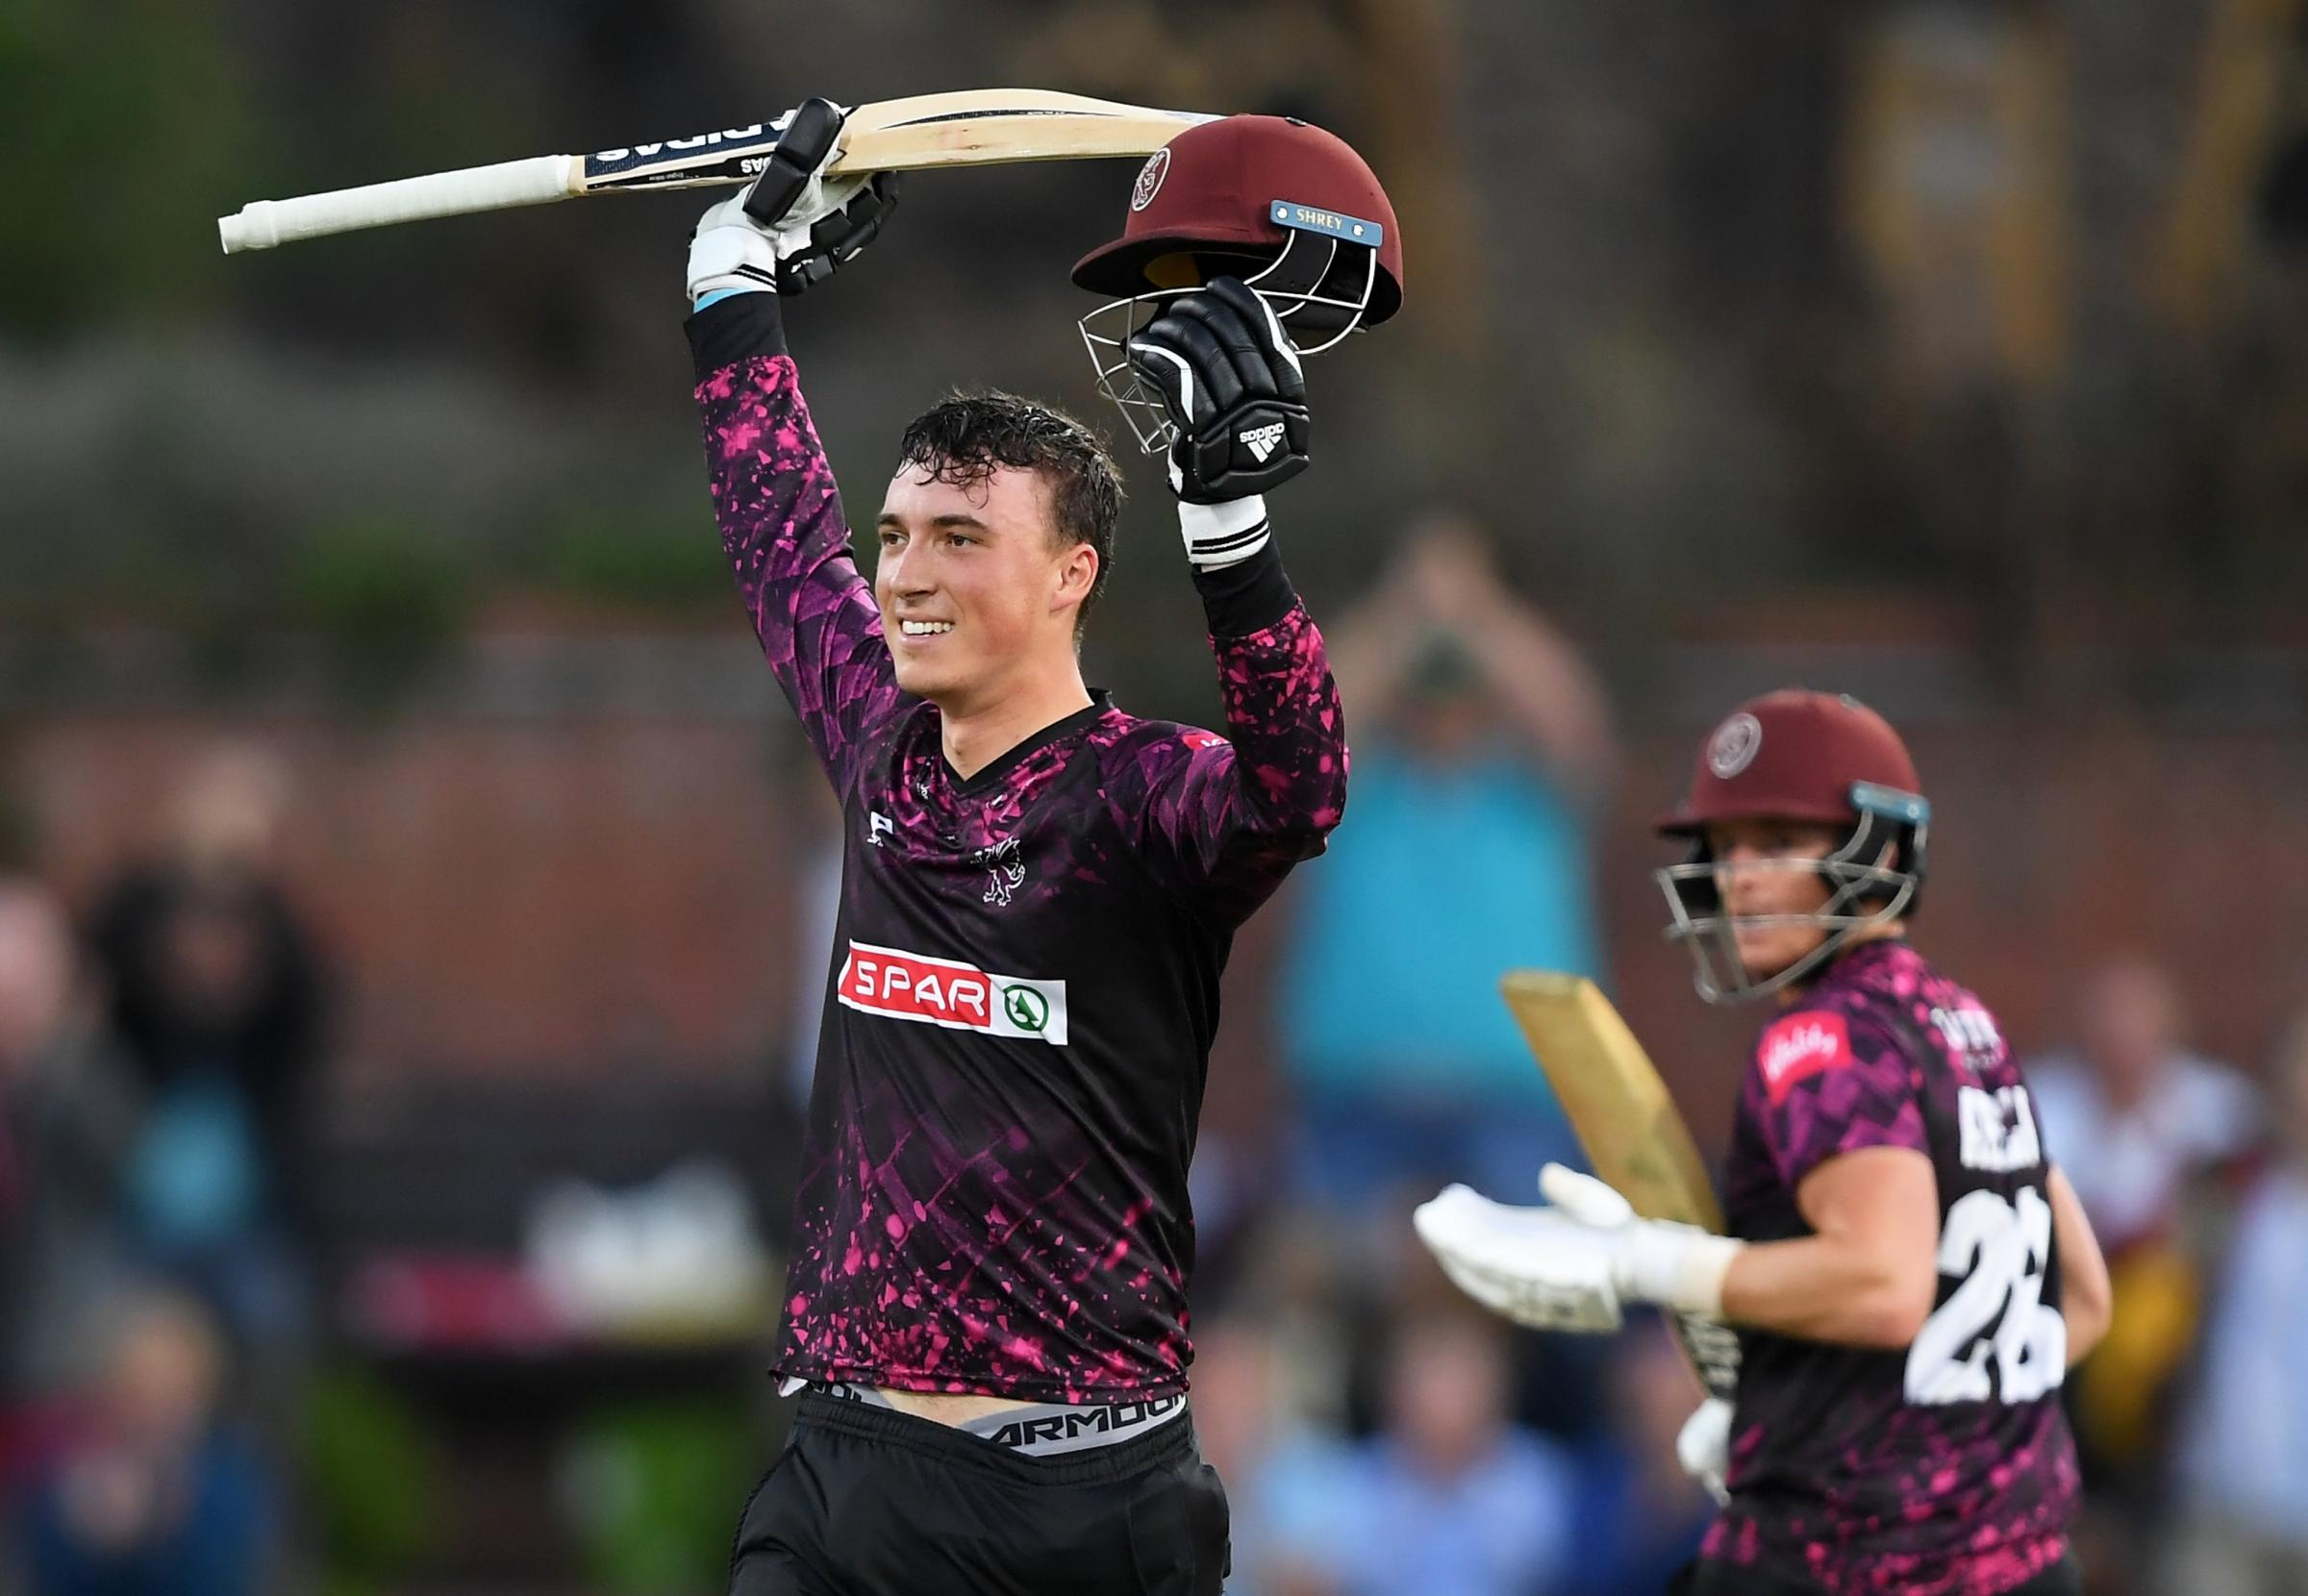 Tom Banton: Somerset star blasts 80 from 28 balls in Abu Dhabi T10